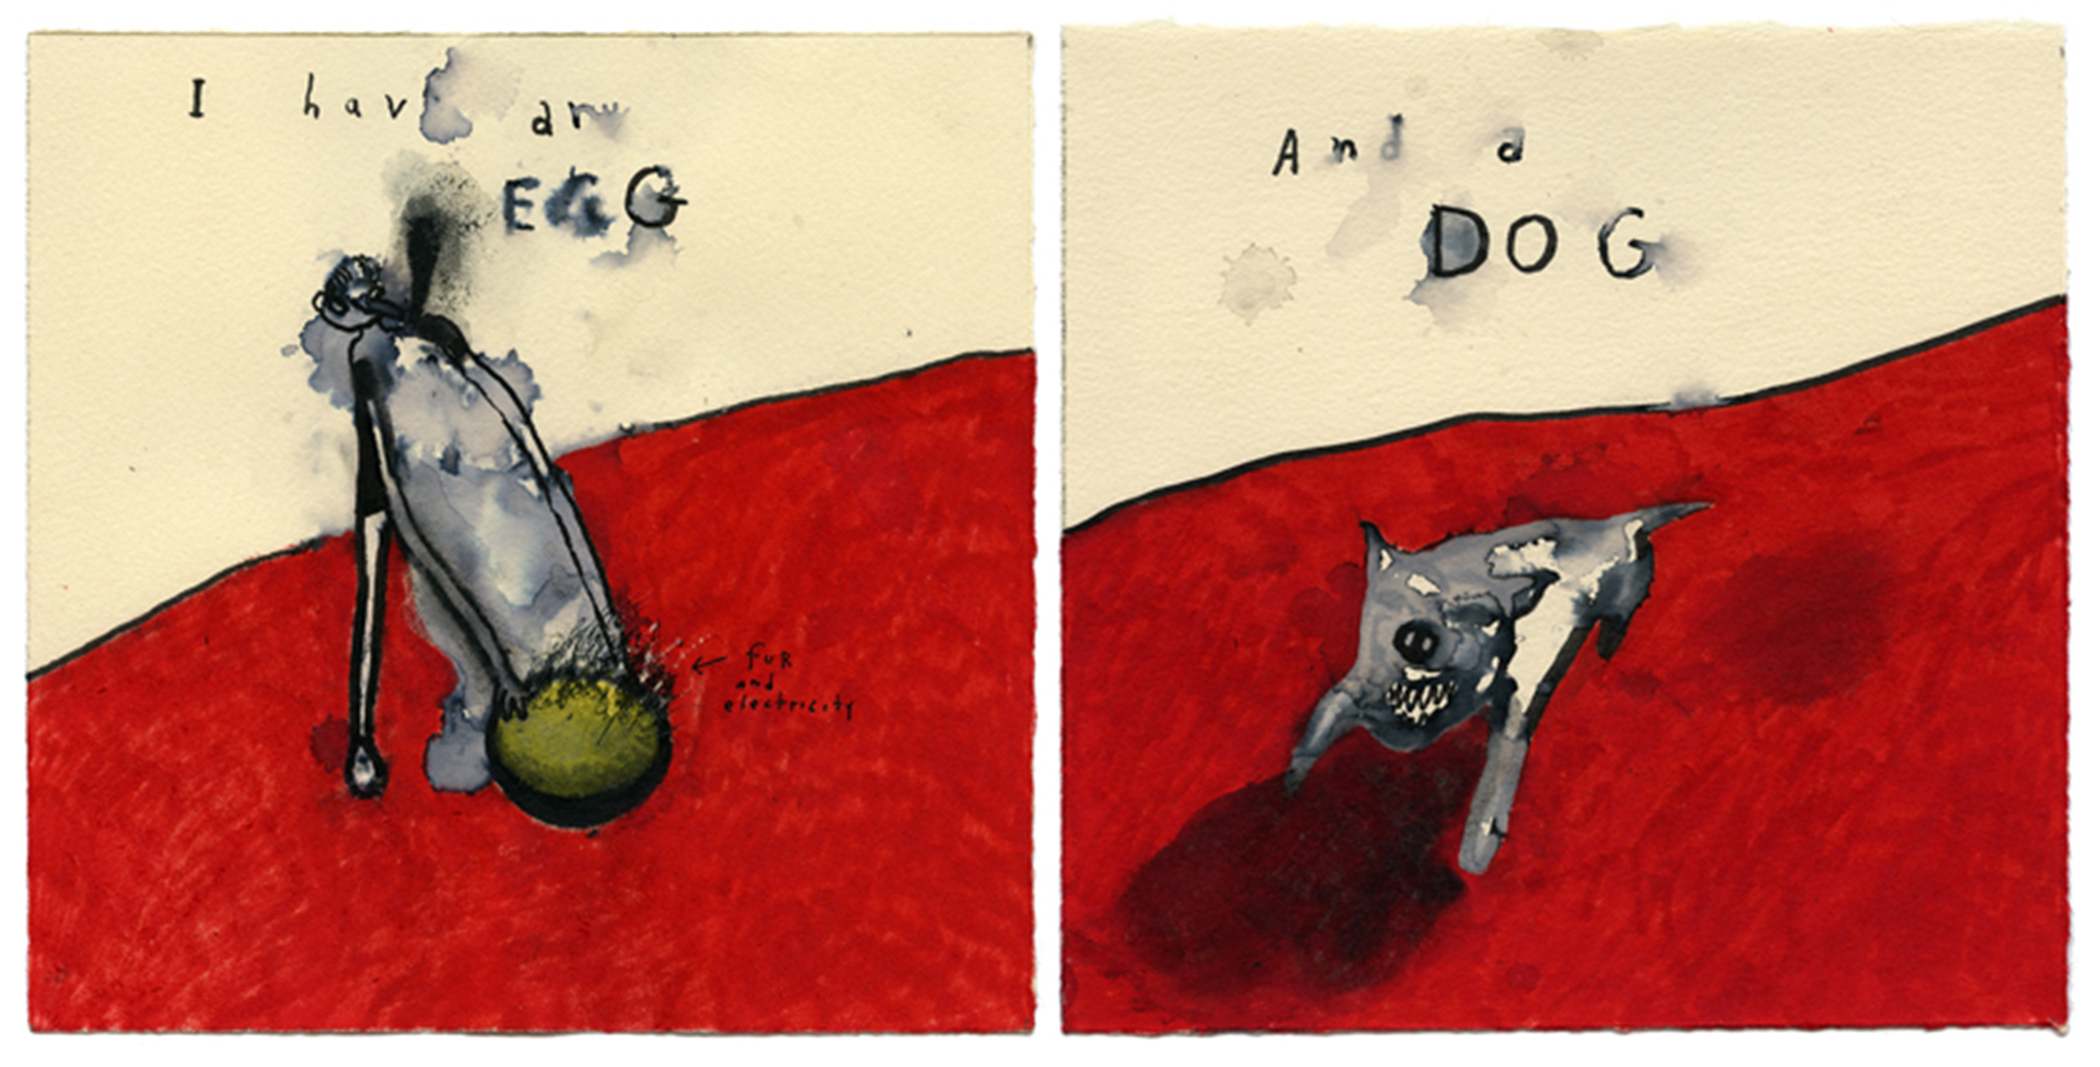 drawing - I HAVE AN EGG AND A DOG